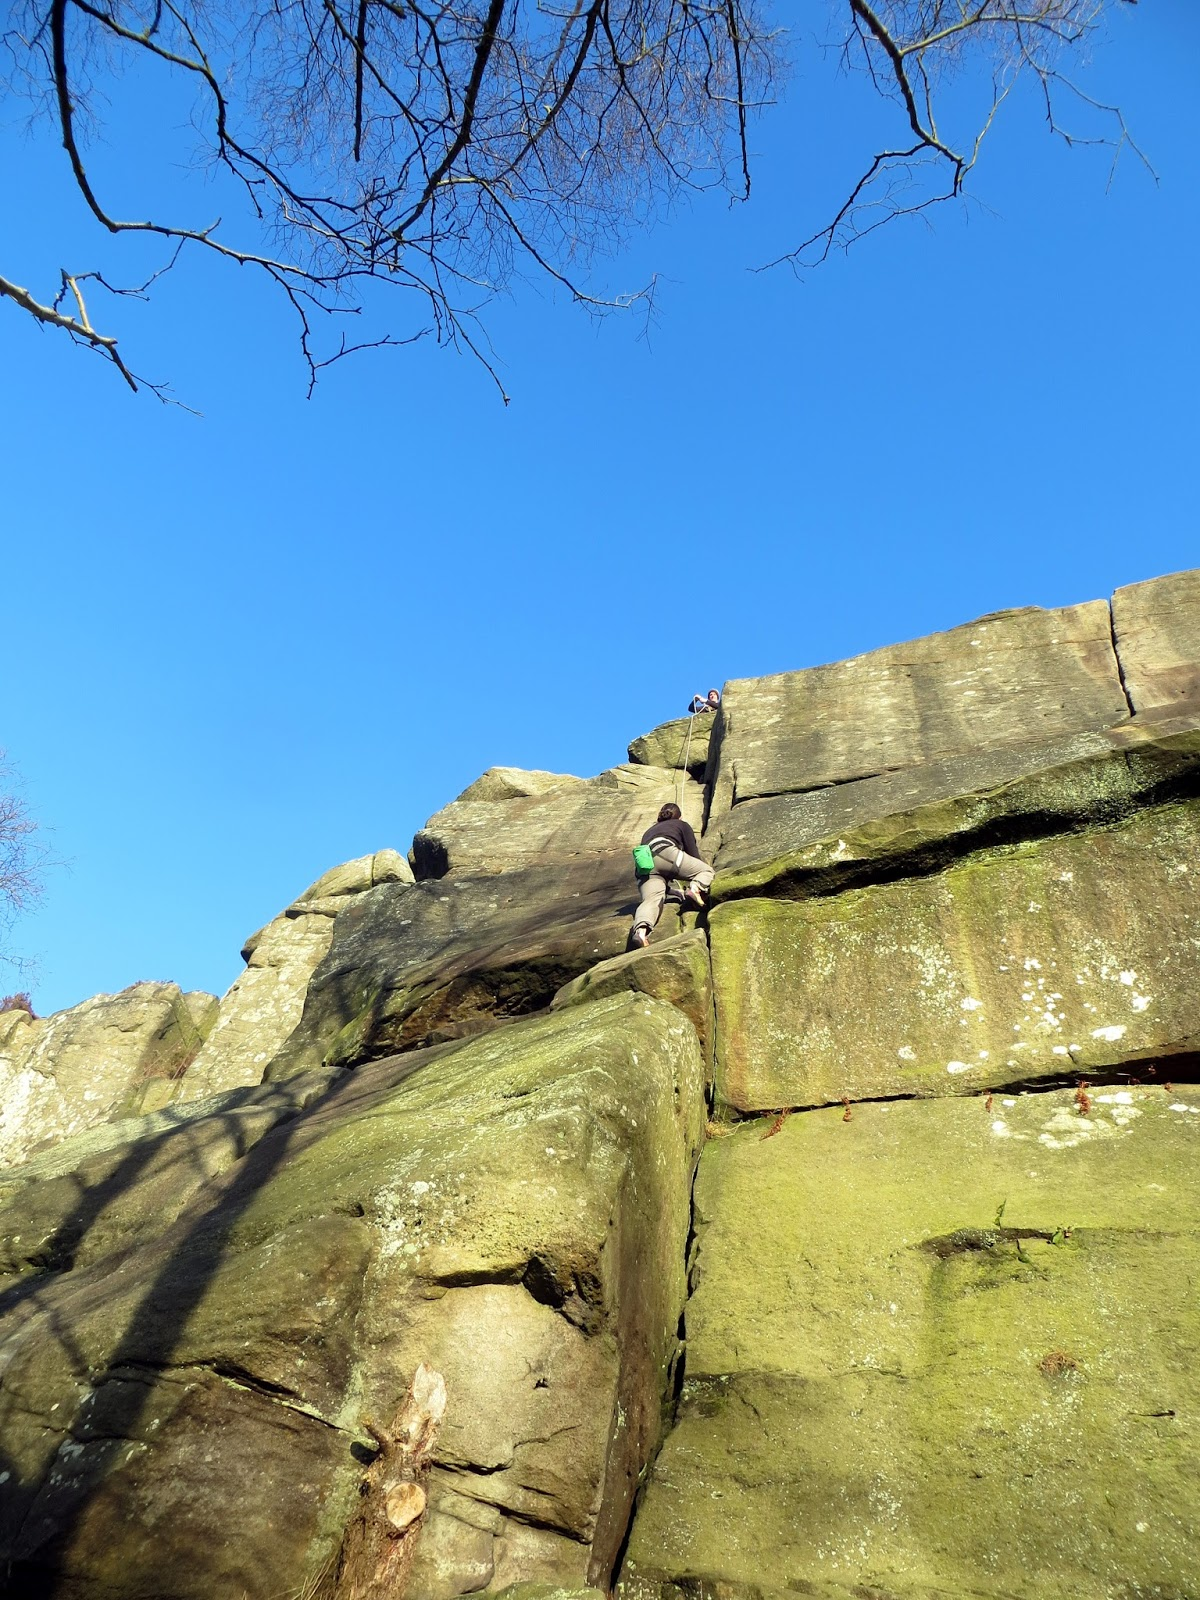 Froggart, Curbar, Climbing, bouldering, peak district, uk, england, outdoors, exploring, adventure, derbyshire, travel,